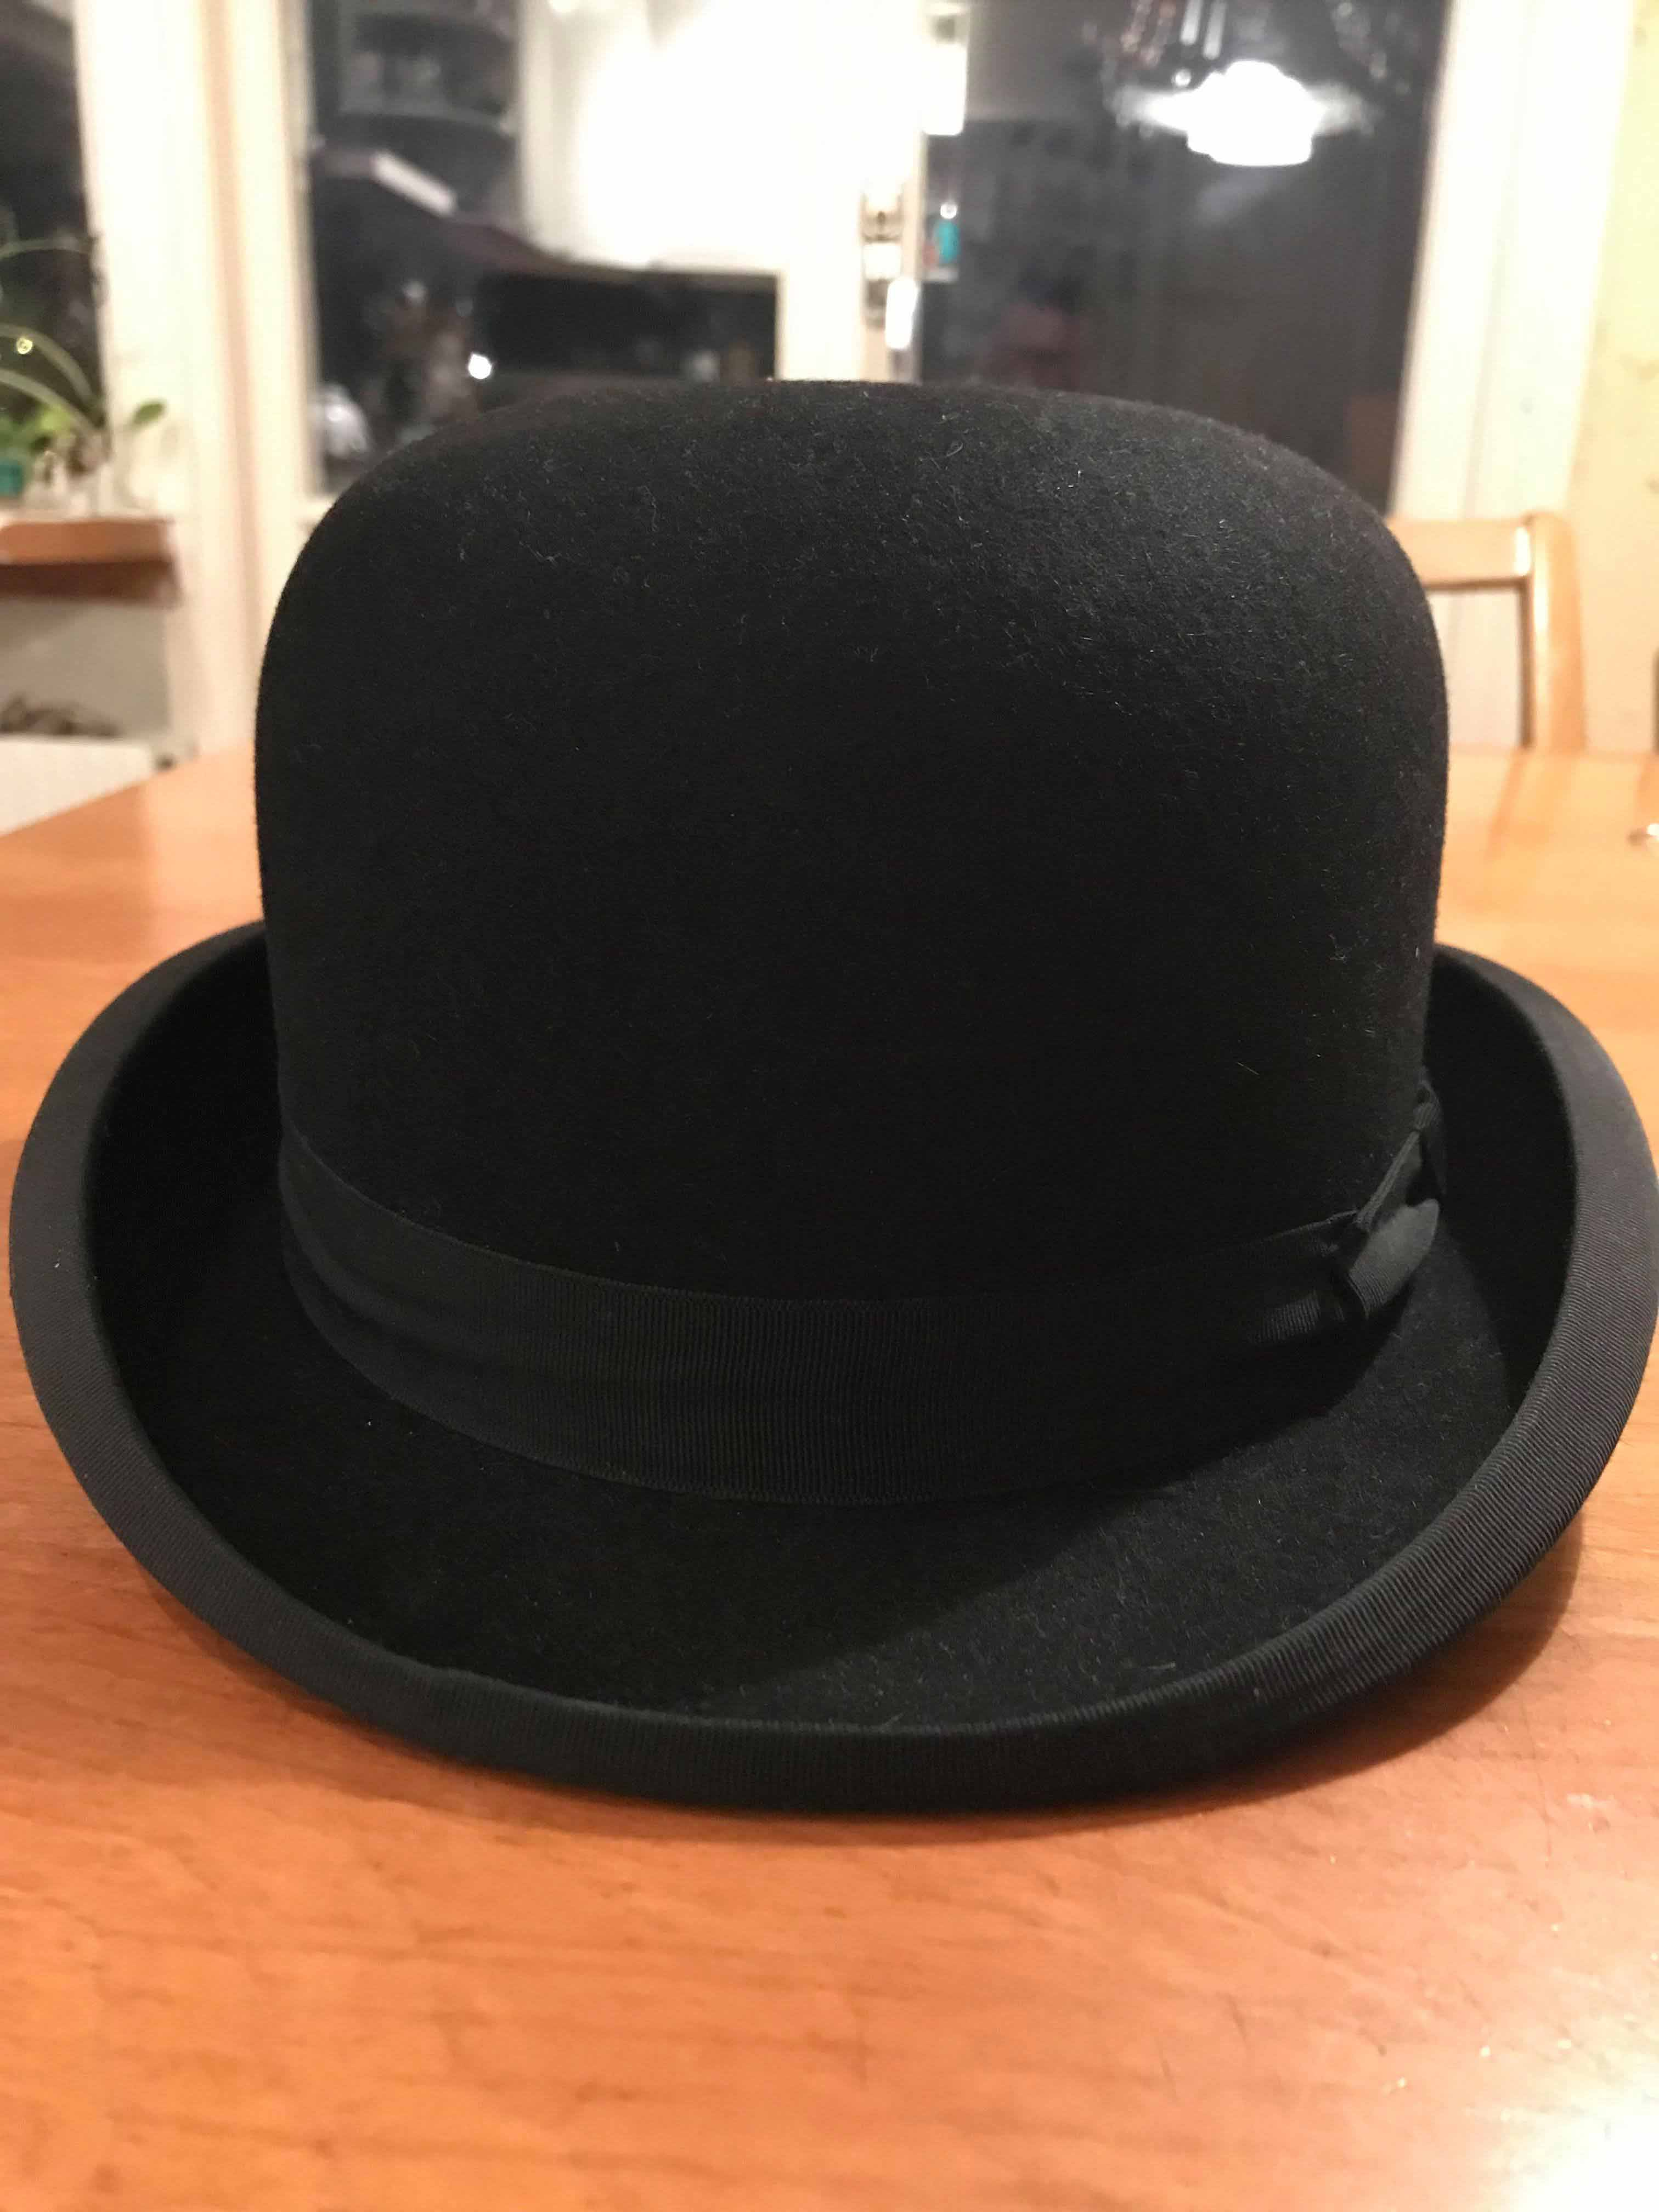 52c2c038016c8 The Bowler or Derby Hat